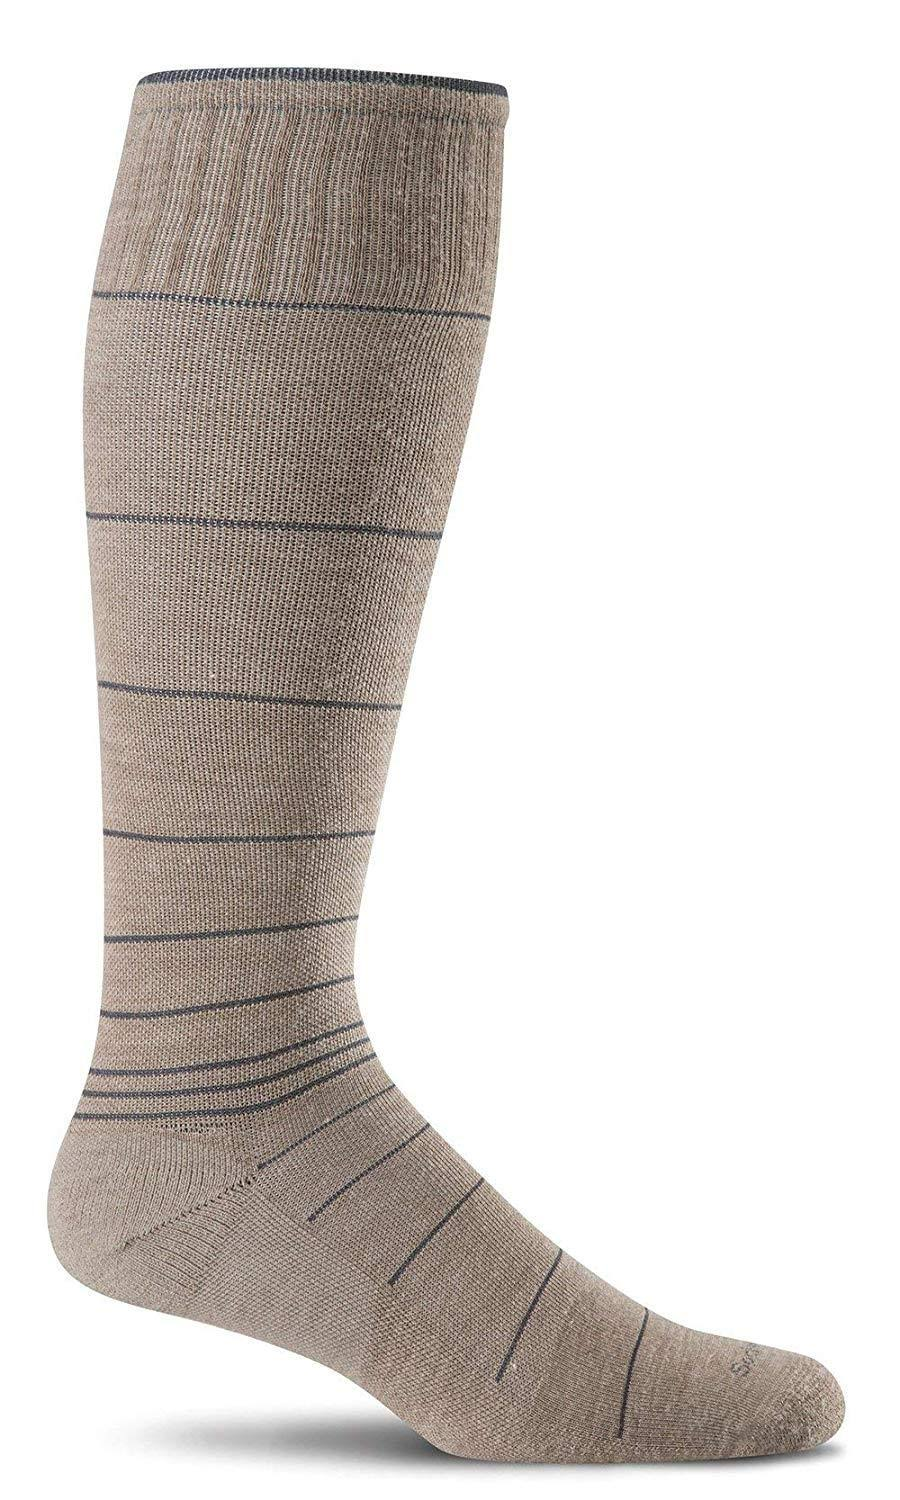 Sockwell Men's Circulator Compression Socks - Khaki, Medium/Large